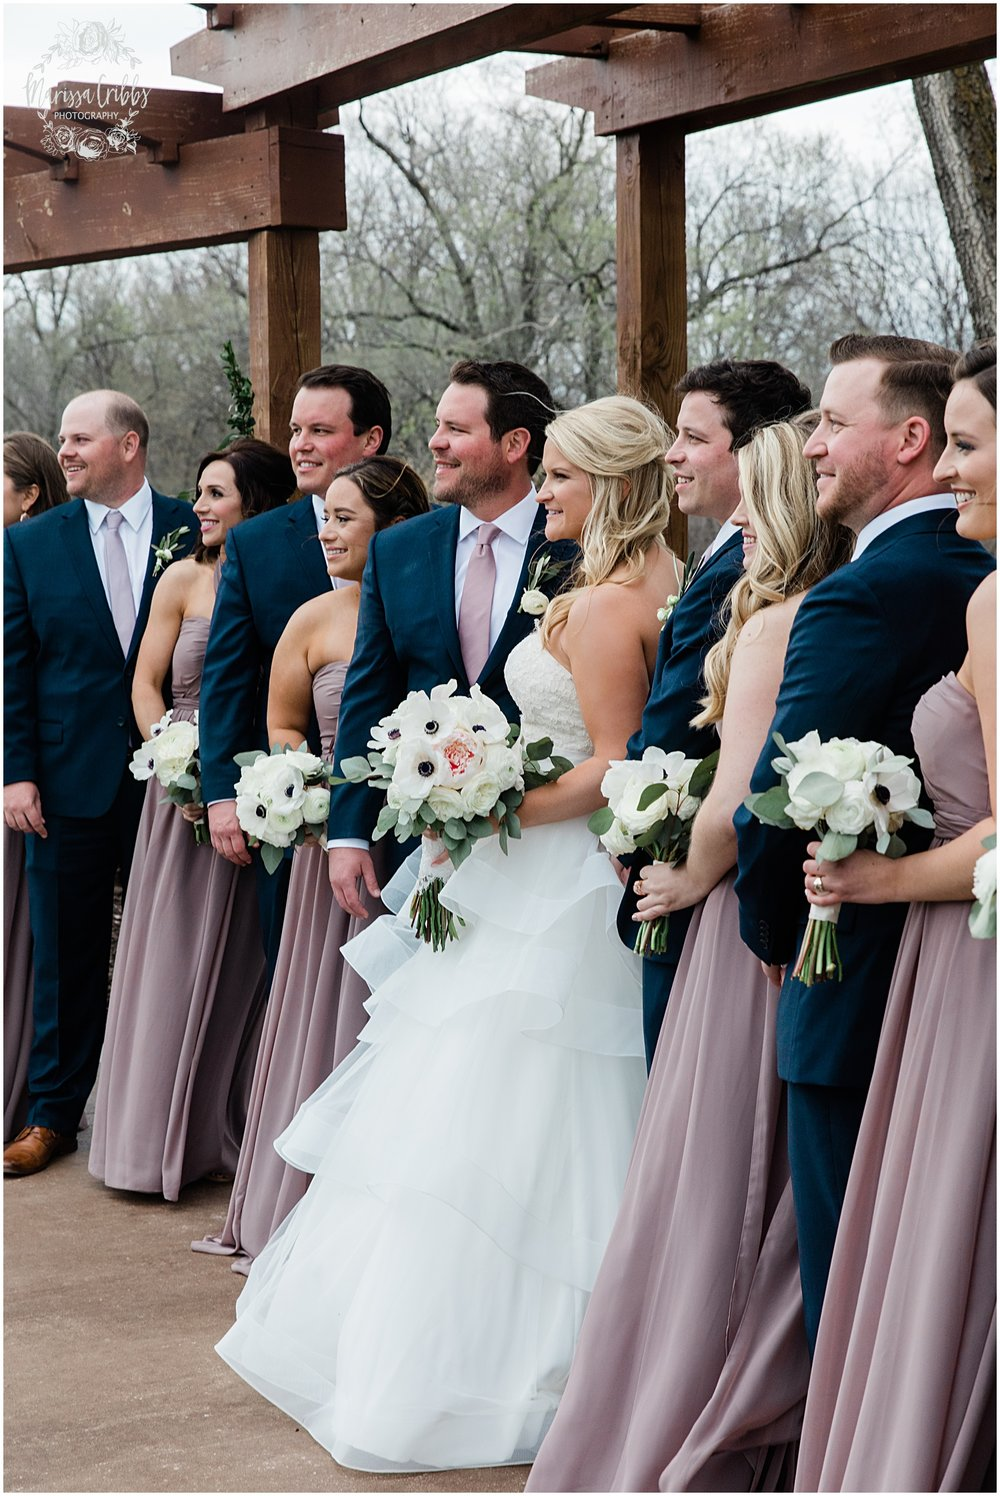 TILSON WEDDING | THE LEGACY AT GREEN HILLS | SIMPLE ELEGANCE | MARISSA CRIBBS PHOTOGRAPHY_4719.jpg